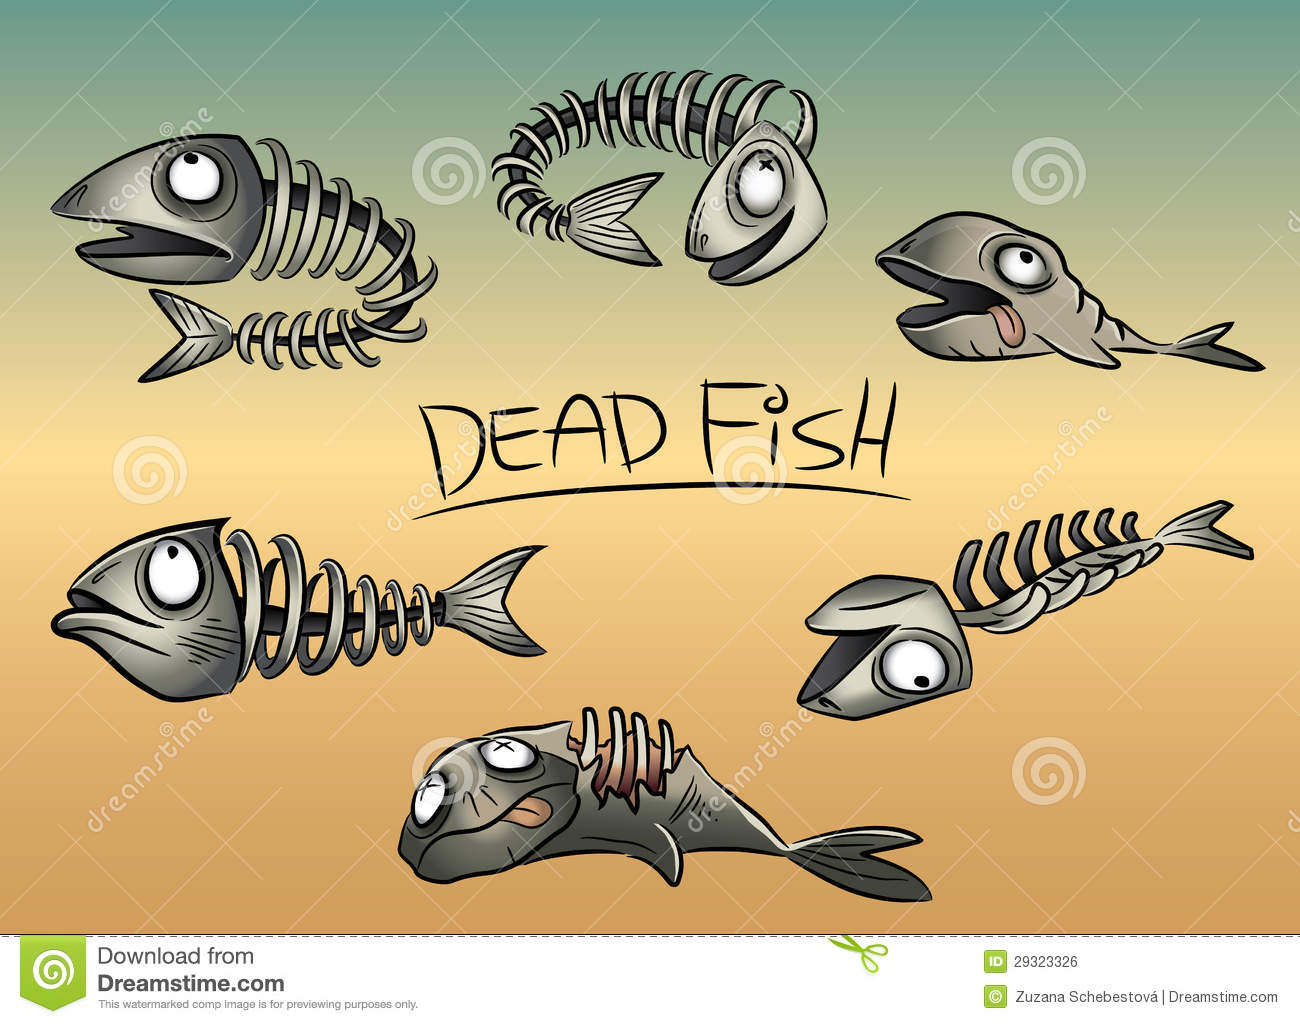 Dead Fish Leftovers Illustration Royalty Free Stock Image - Image ...